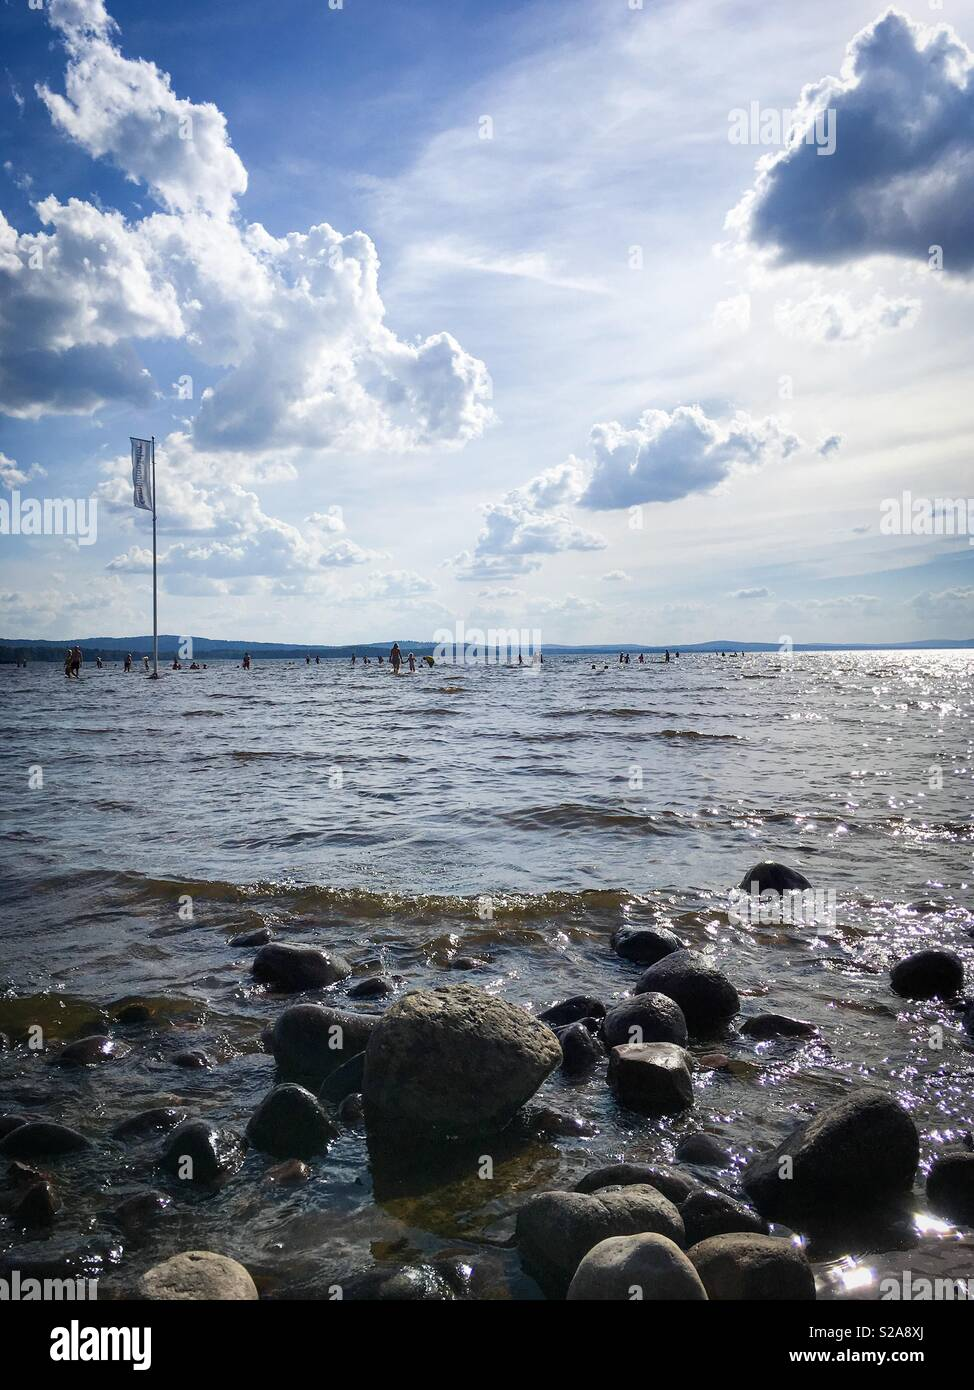 During this summers heatwave in Sweden the lakes become an important  resource enabling people to cool down. This is lake Siljan in Rättvik, Dalarna, Sweden. - Stock Image